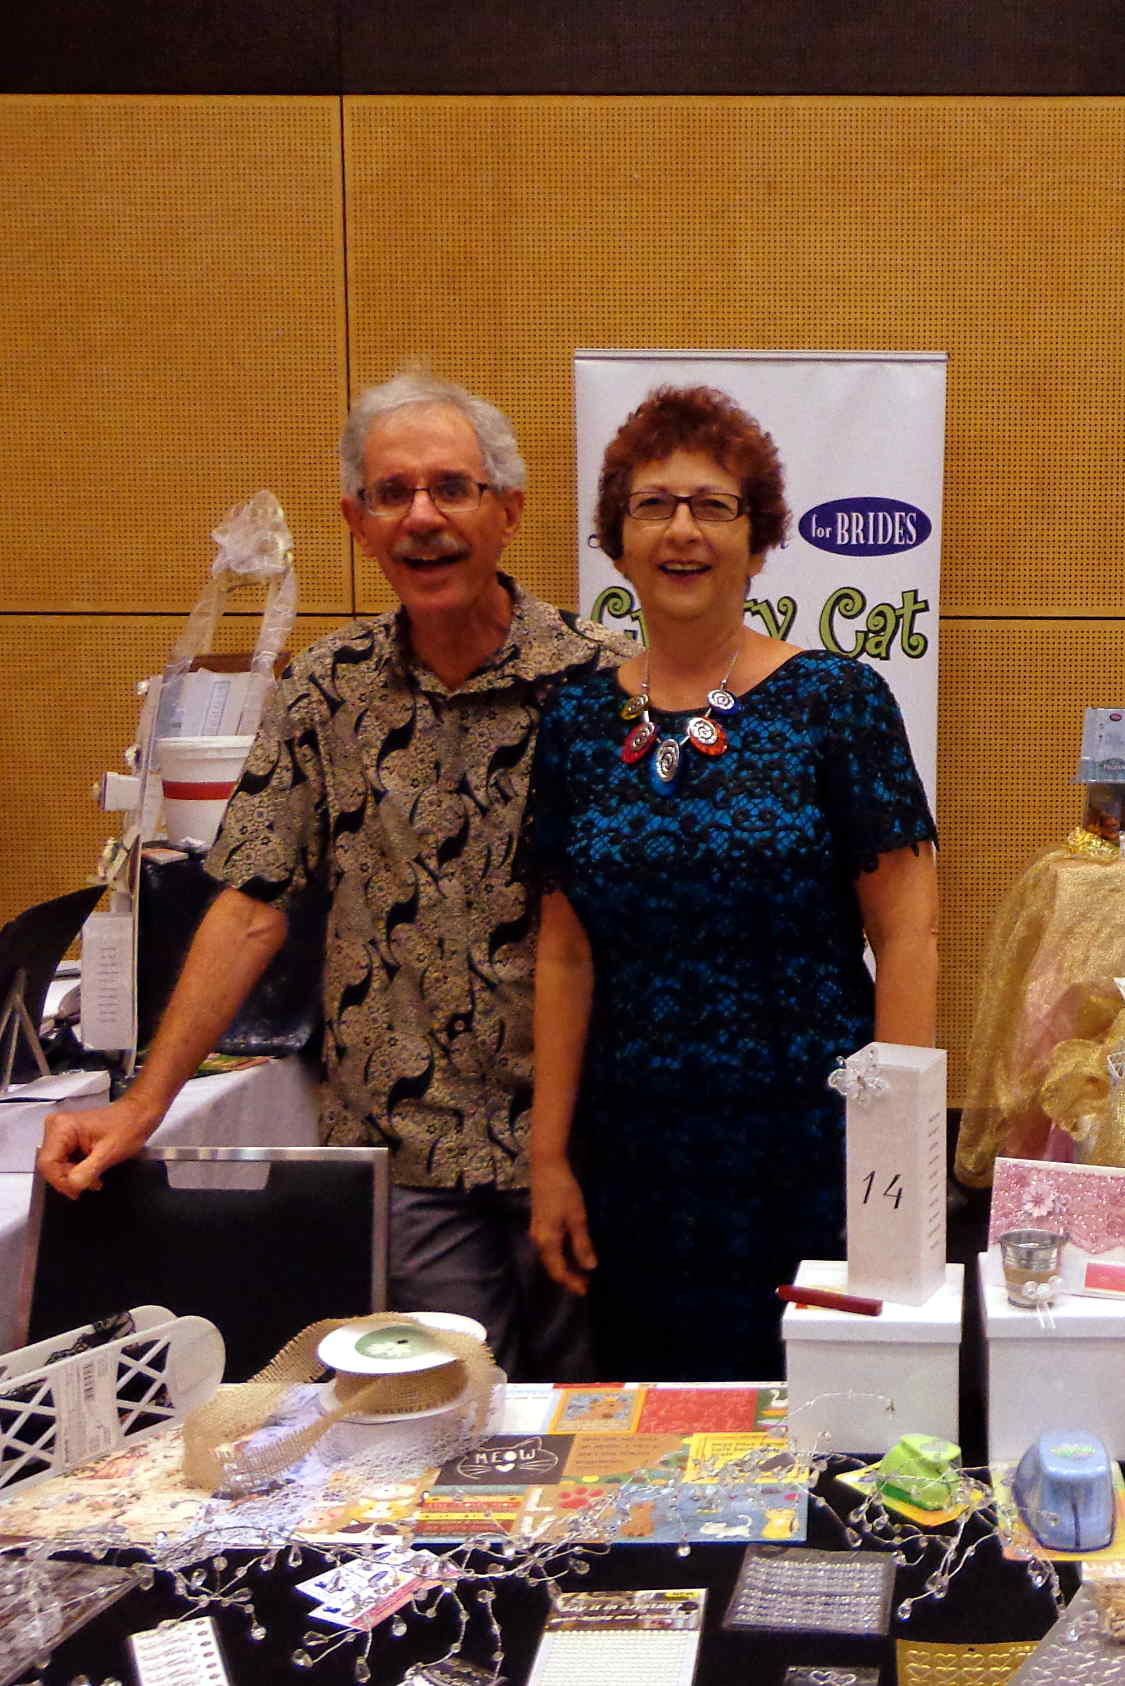 Jon and Lucy Dillon at the 2017 Mackay Wedding Showcase